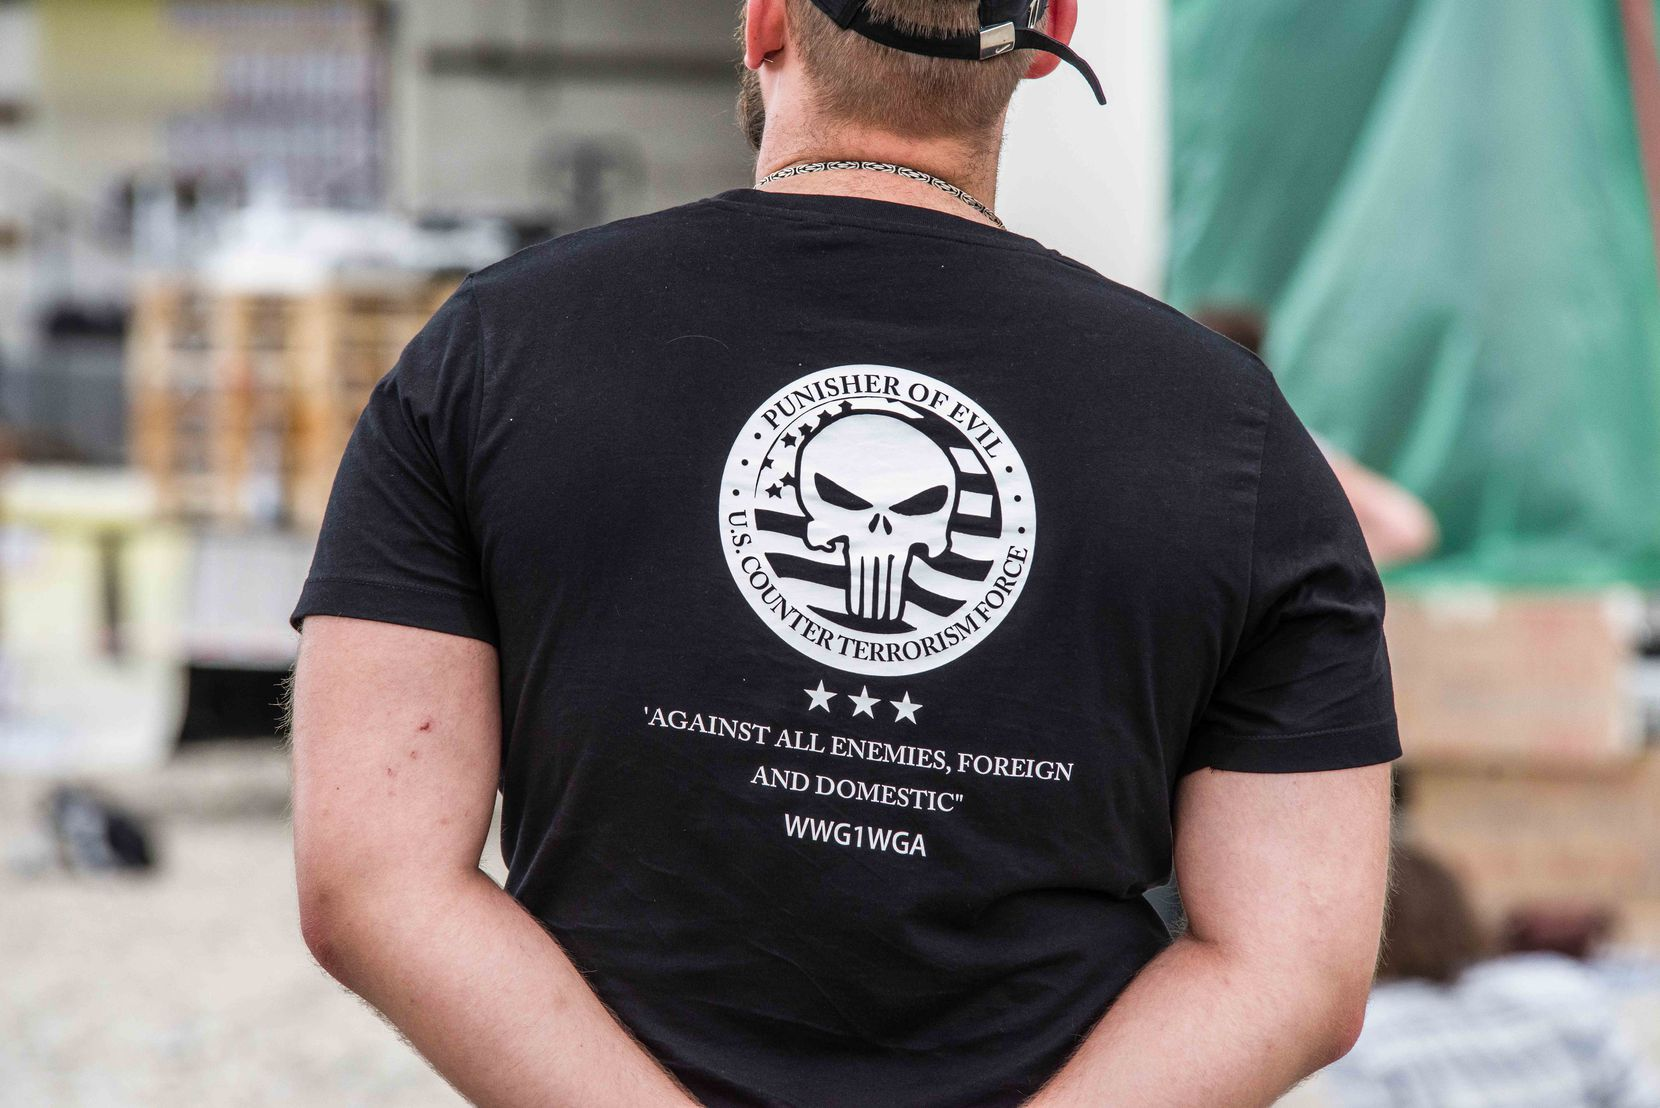 The Punisher logo as seen on a QAnon T-shirt in Munich, Germany, in July 2020.